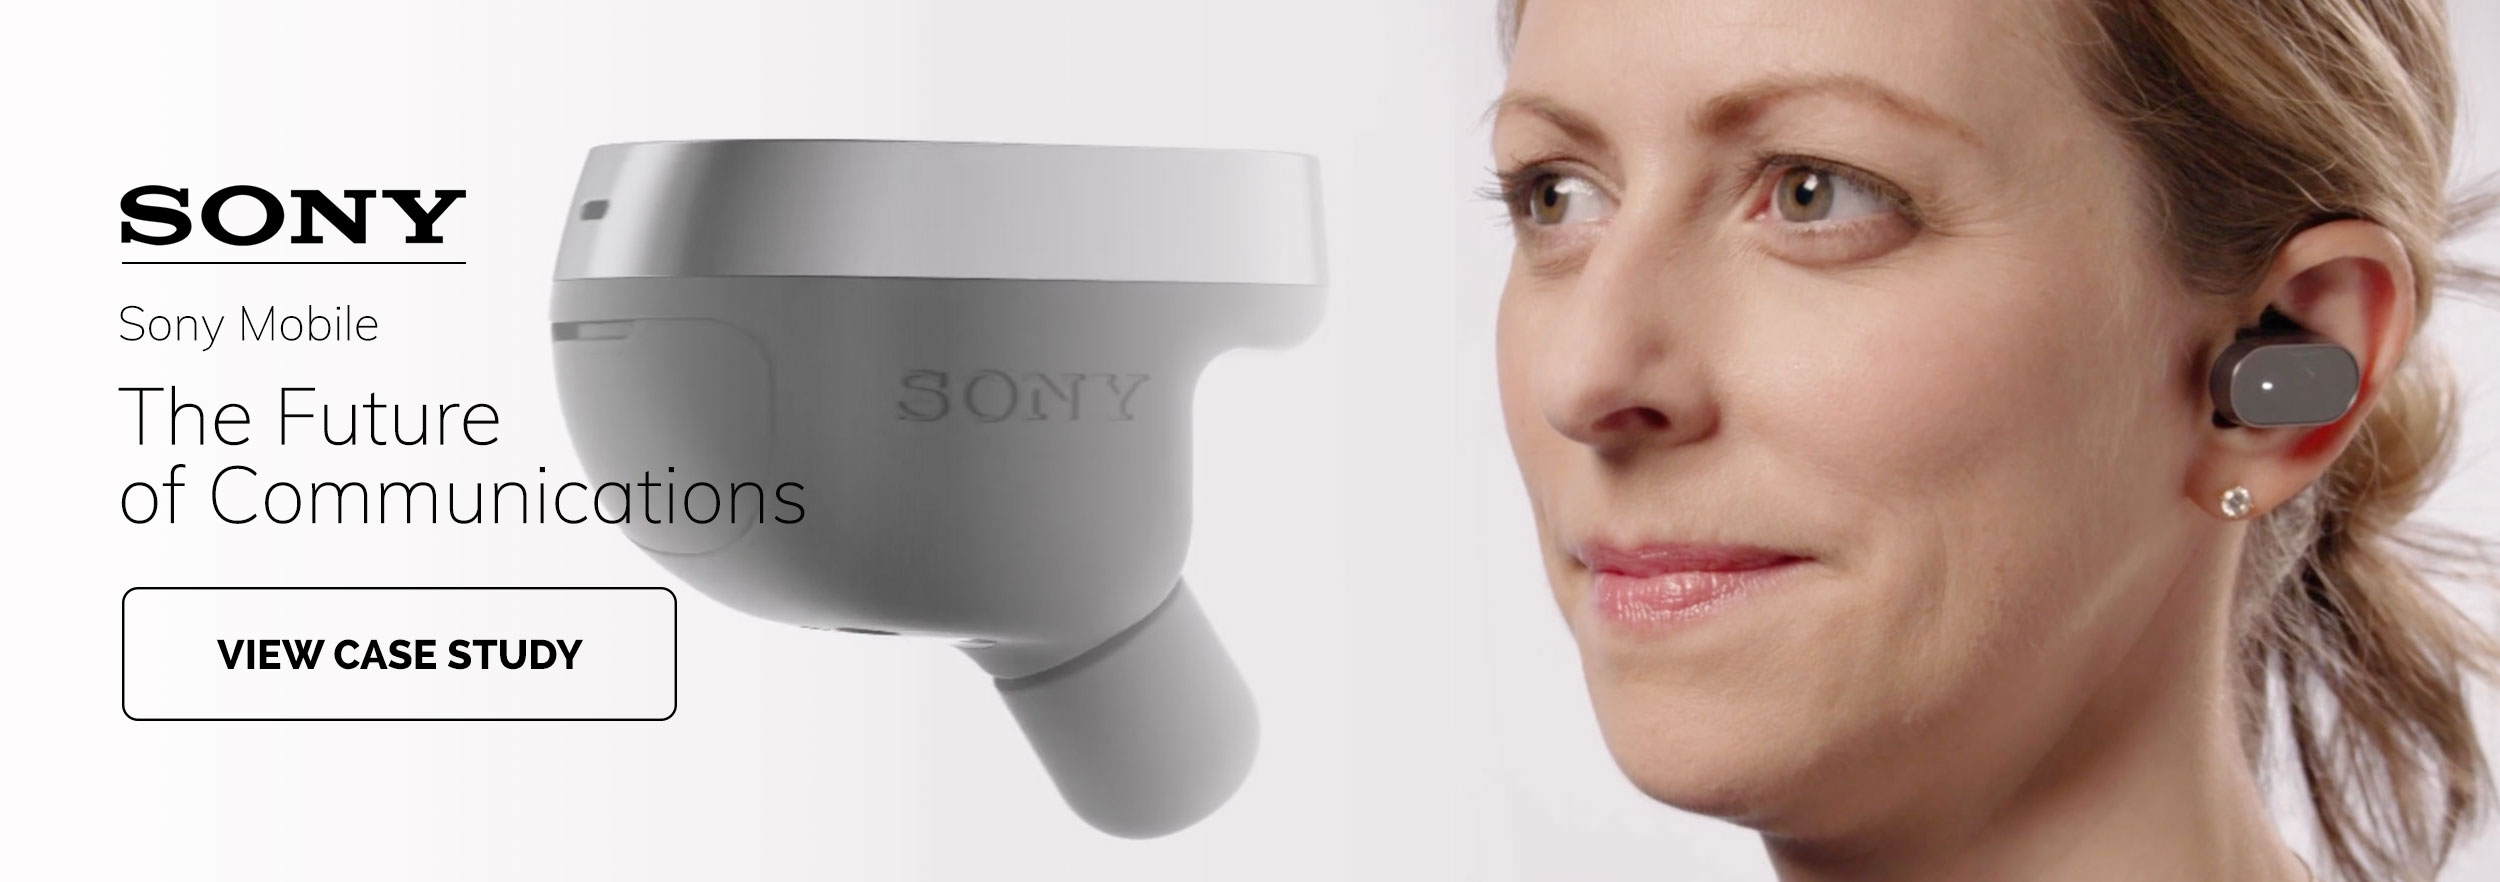 Sony Video Production